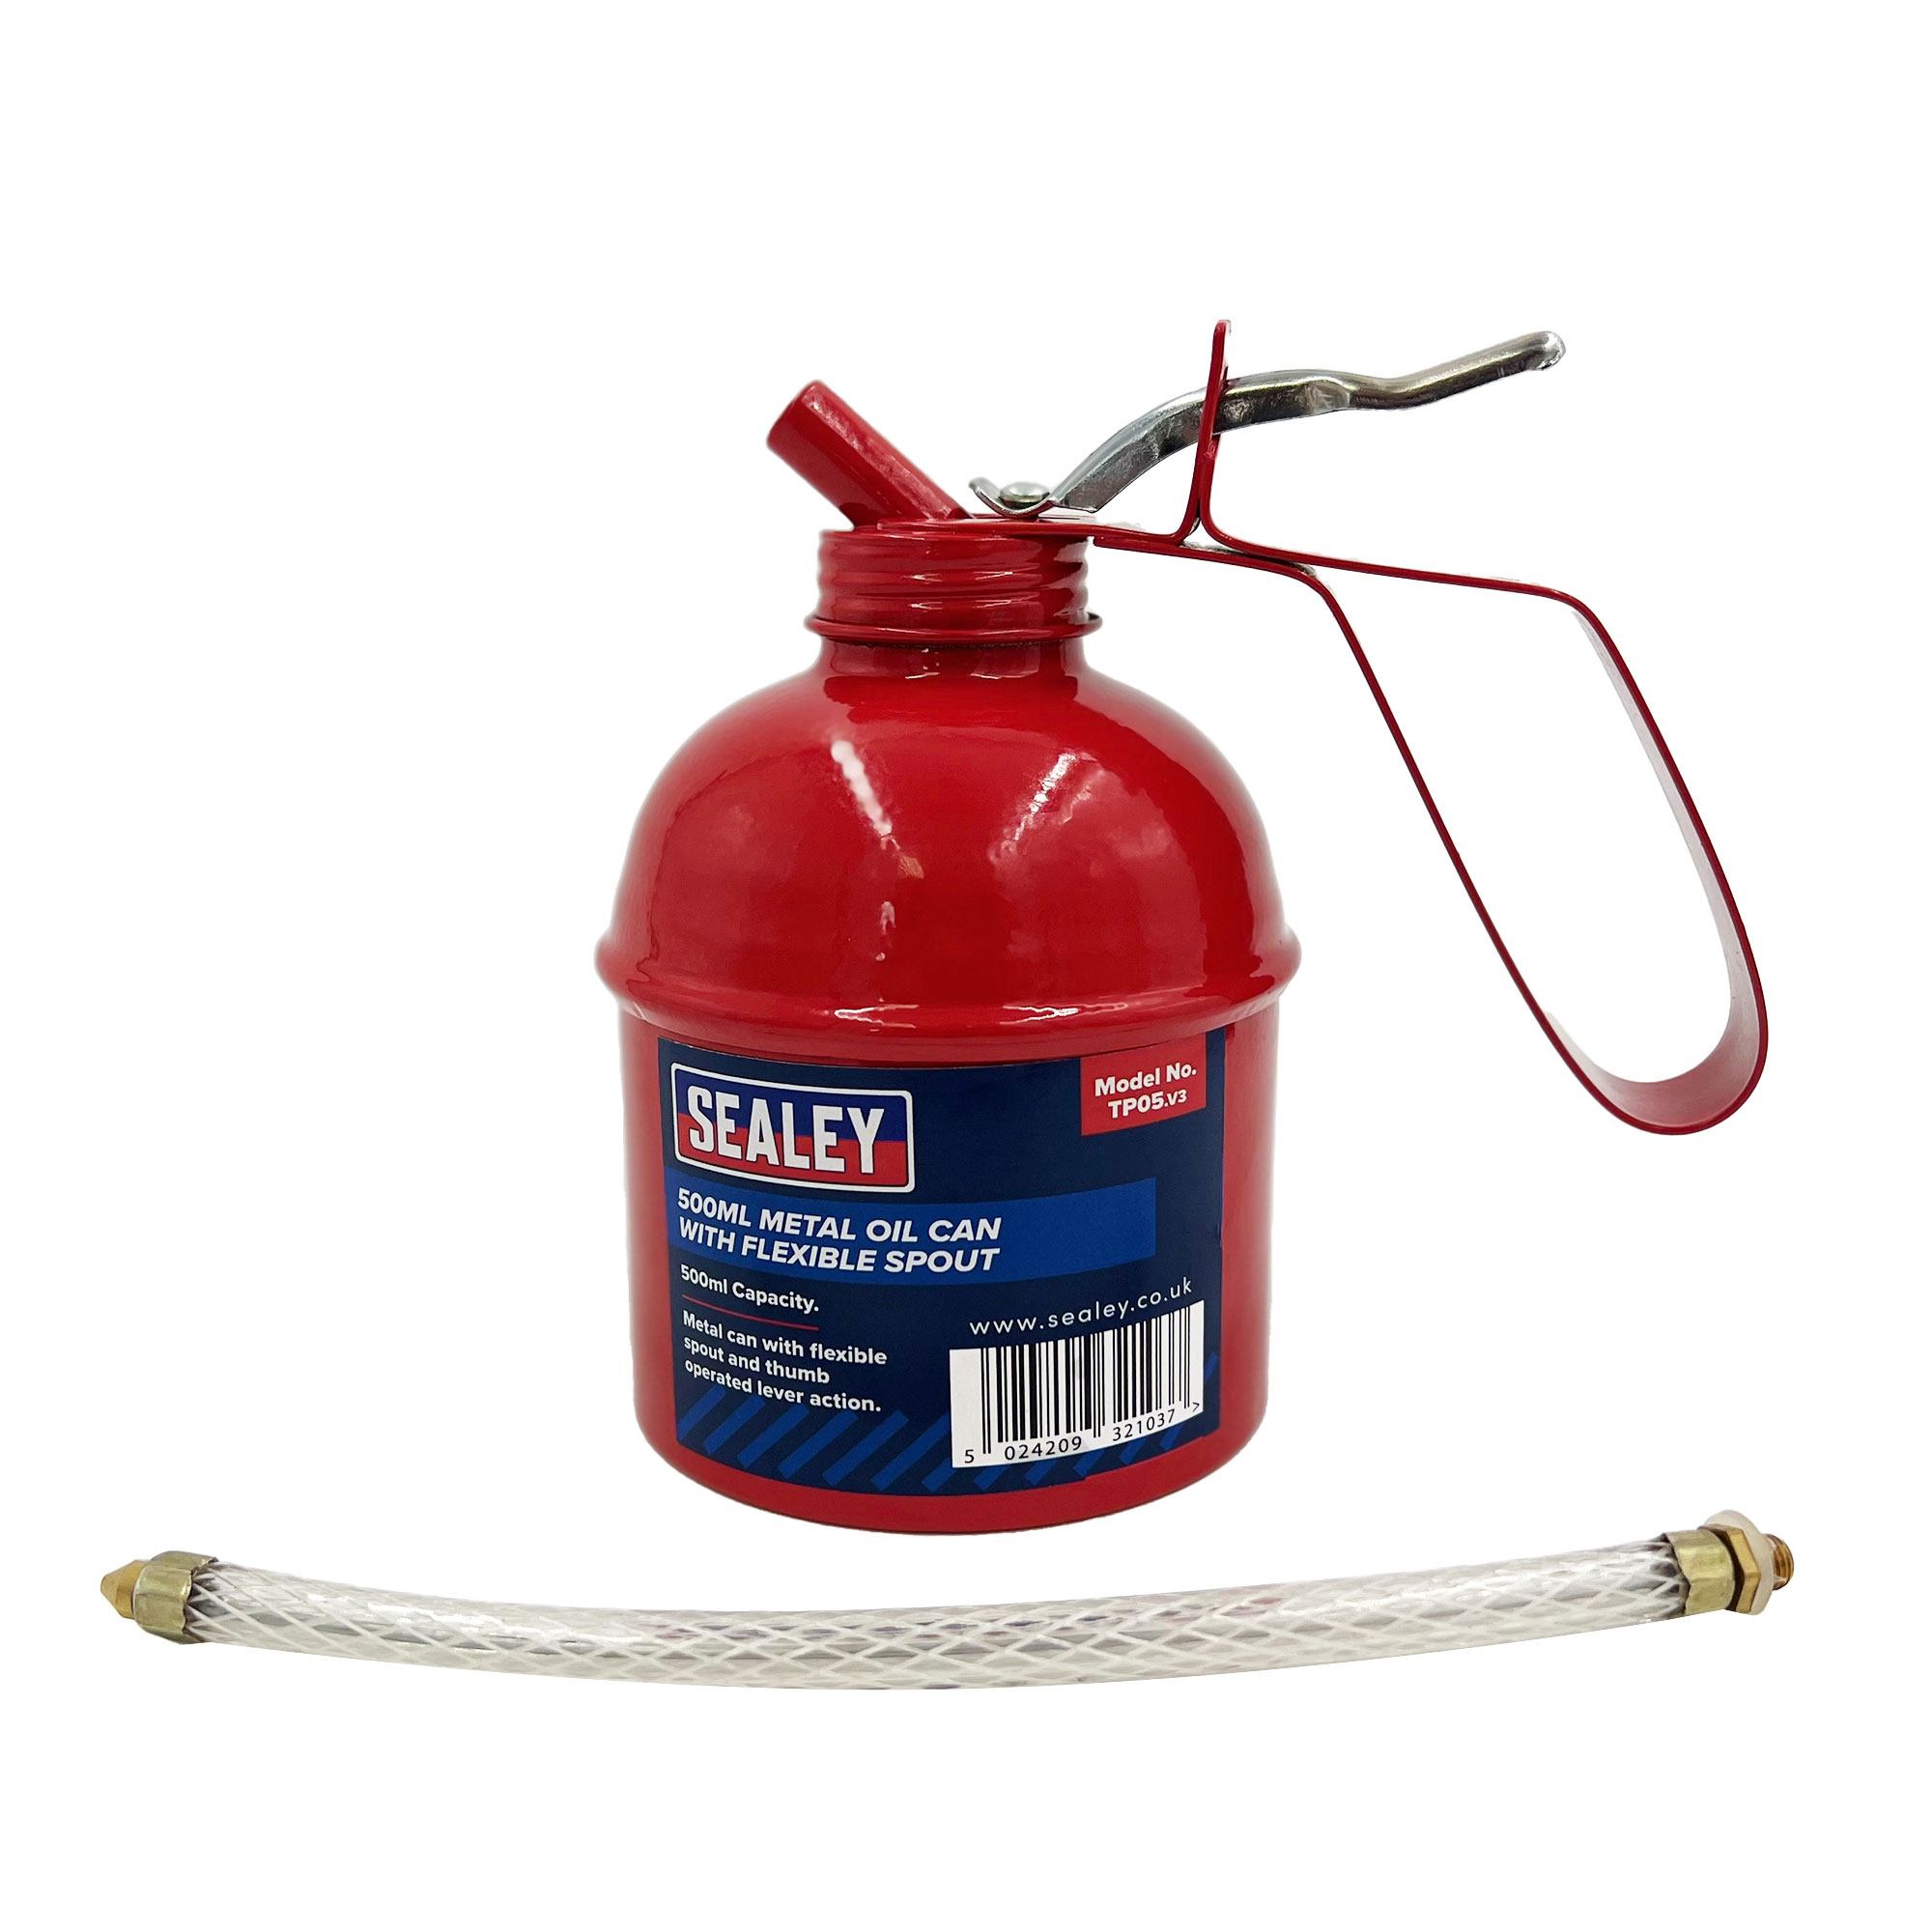 Sealey Oil Can 500ml by Workshop Plus